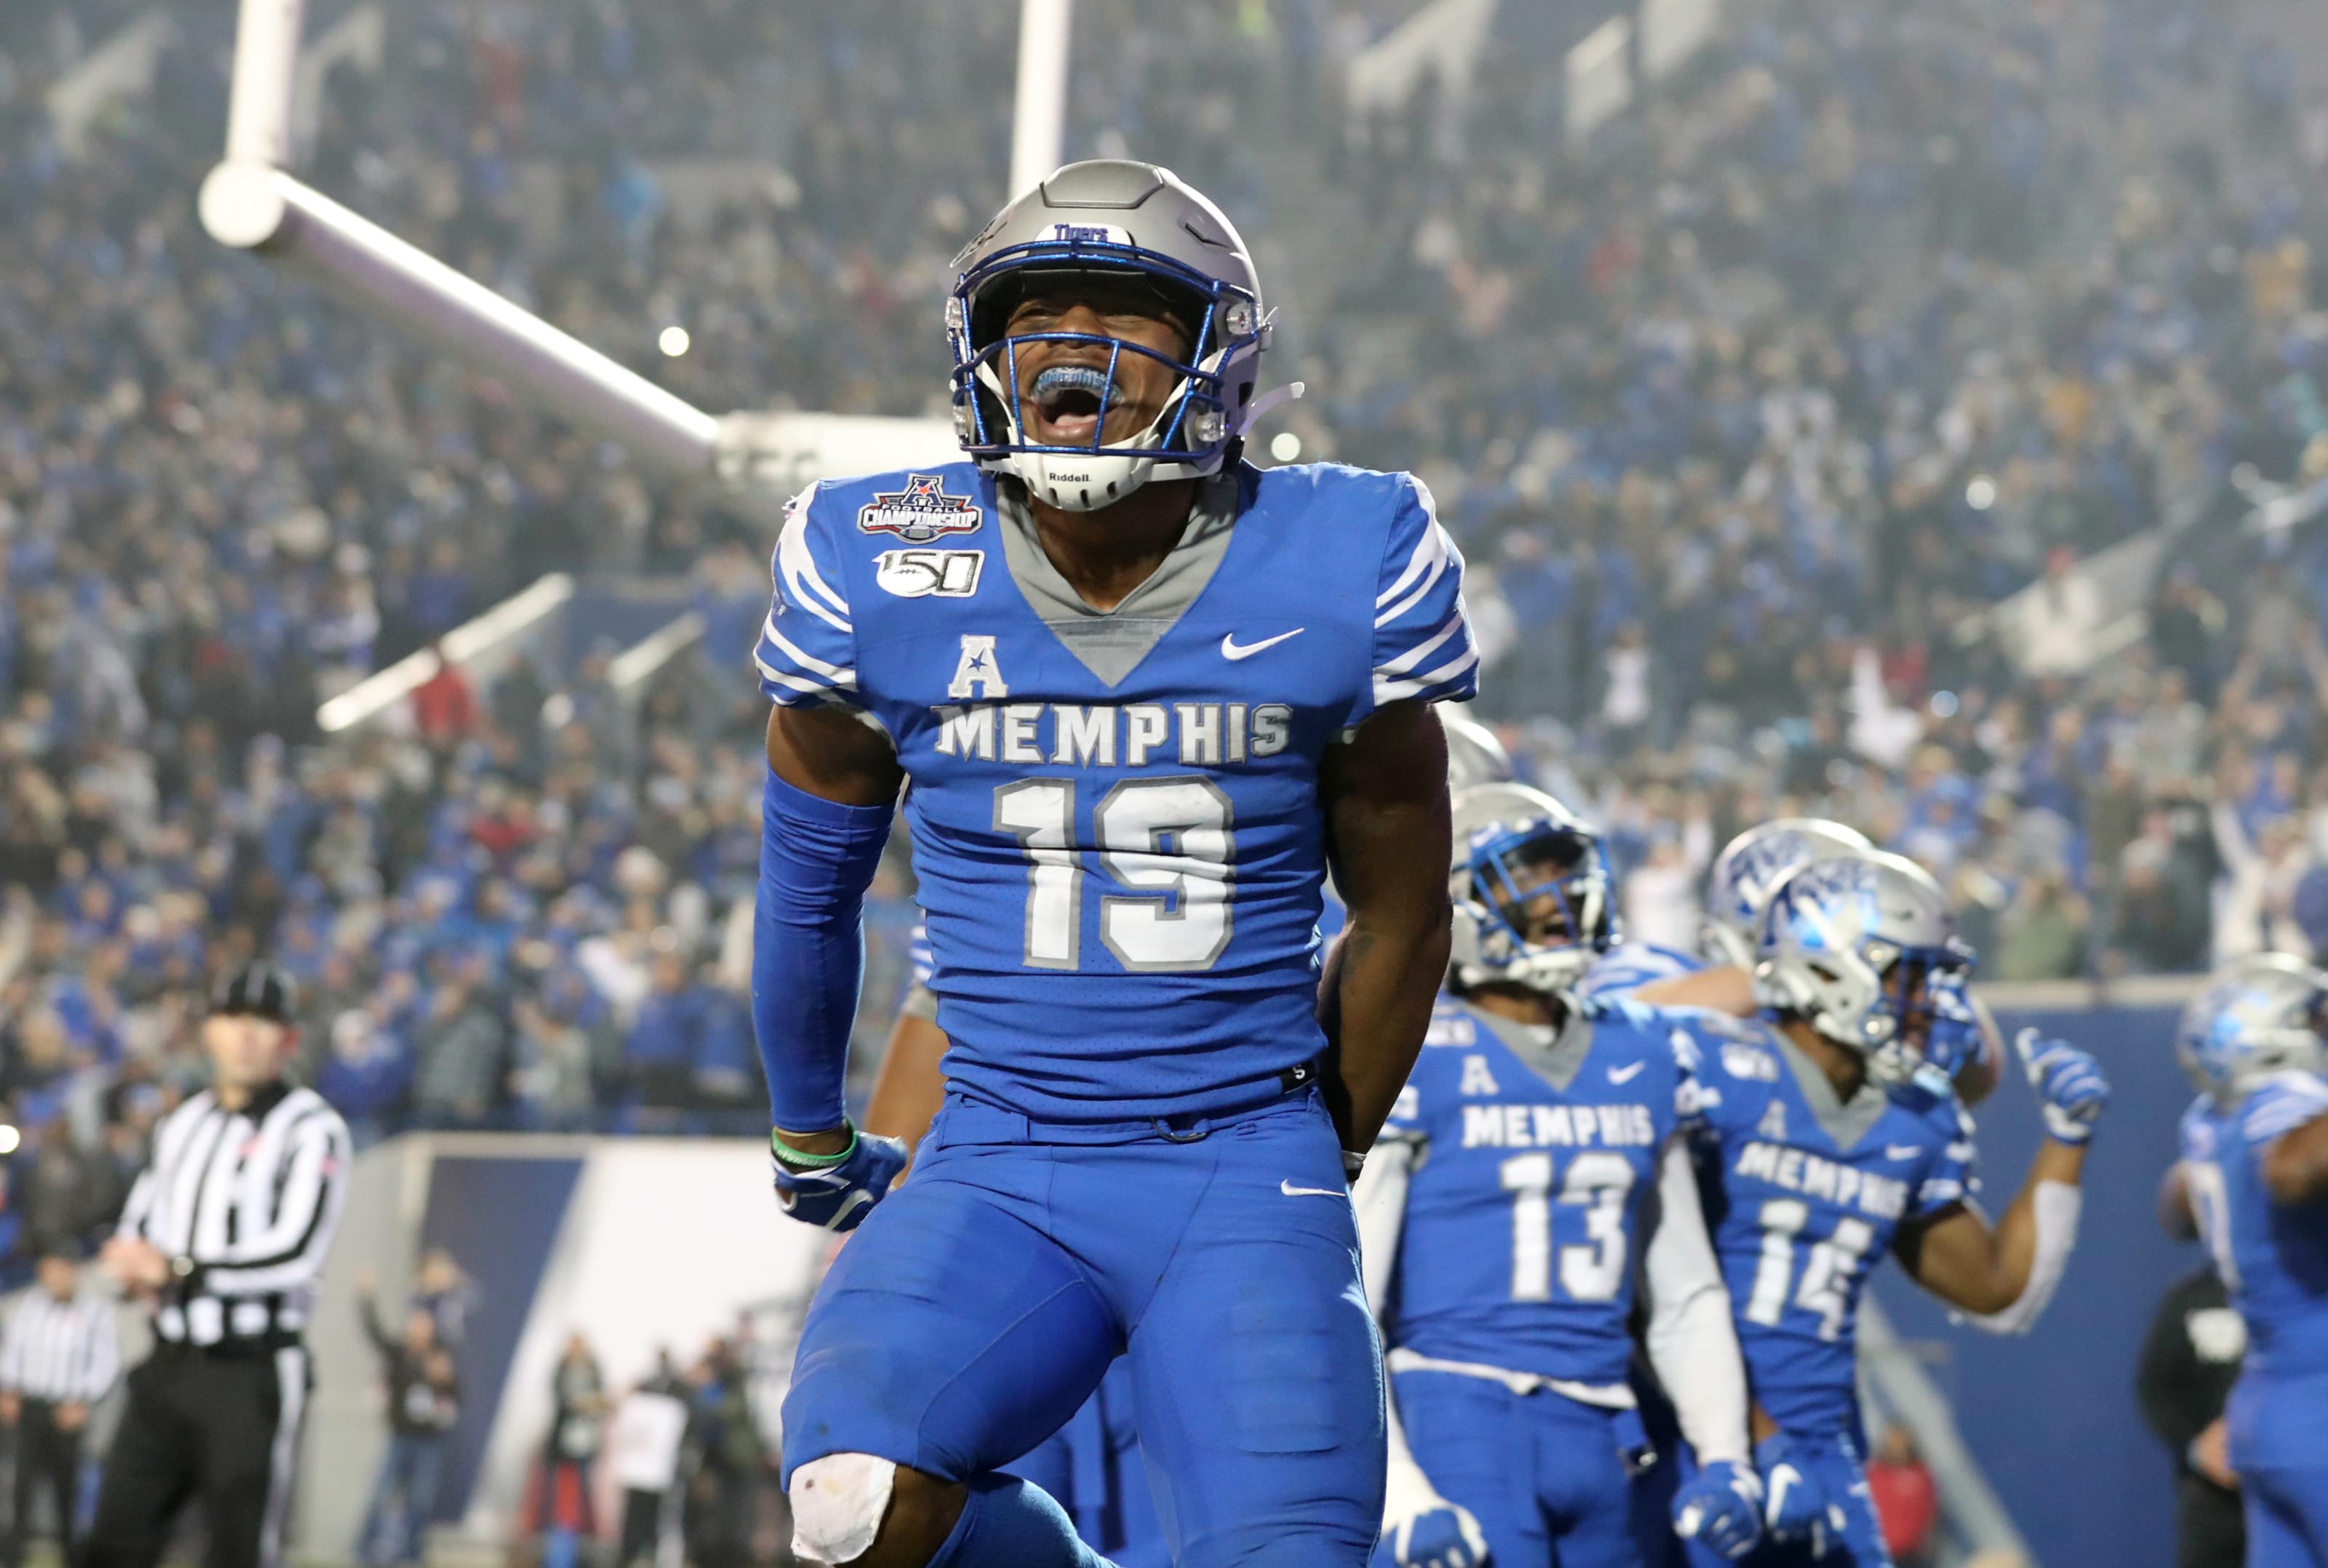 Memphis RB Kenneth Gainwell a swiss army knife in 2021 NFL Draft - Page 3